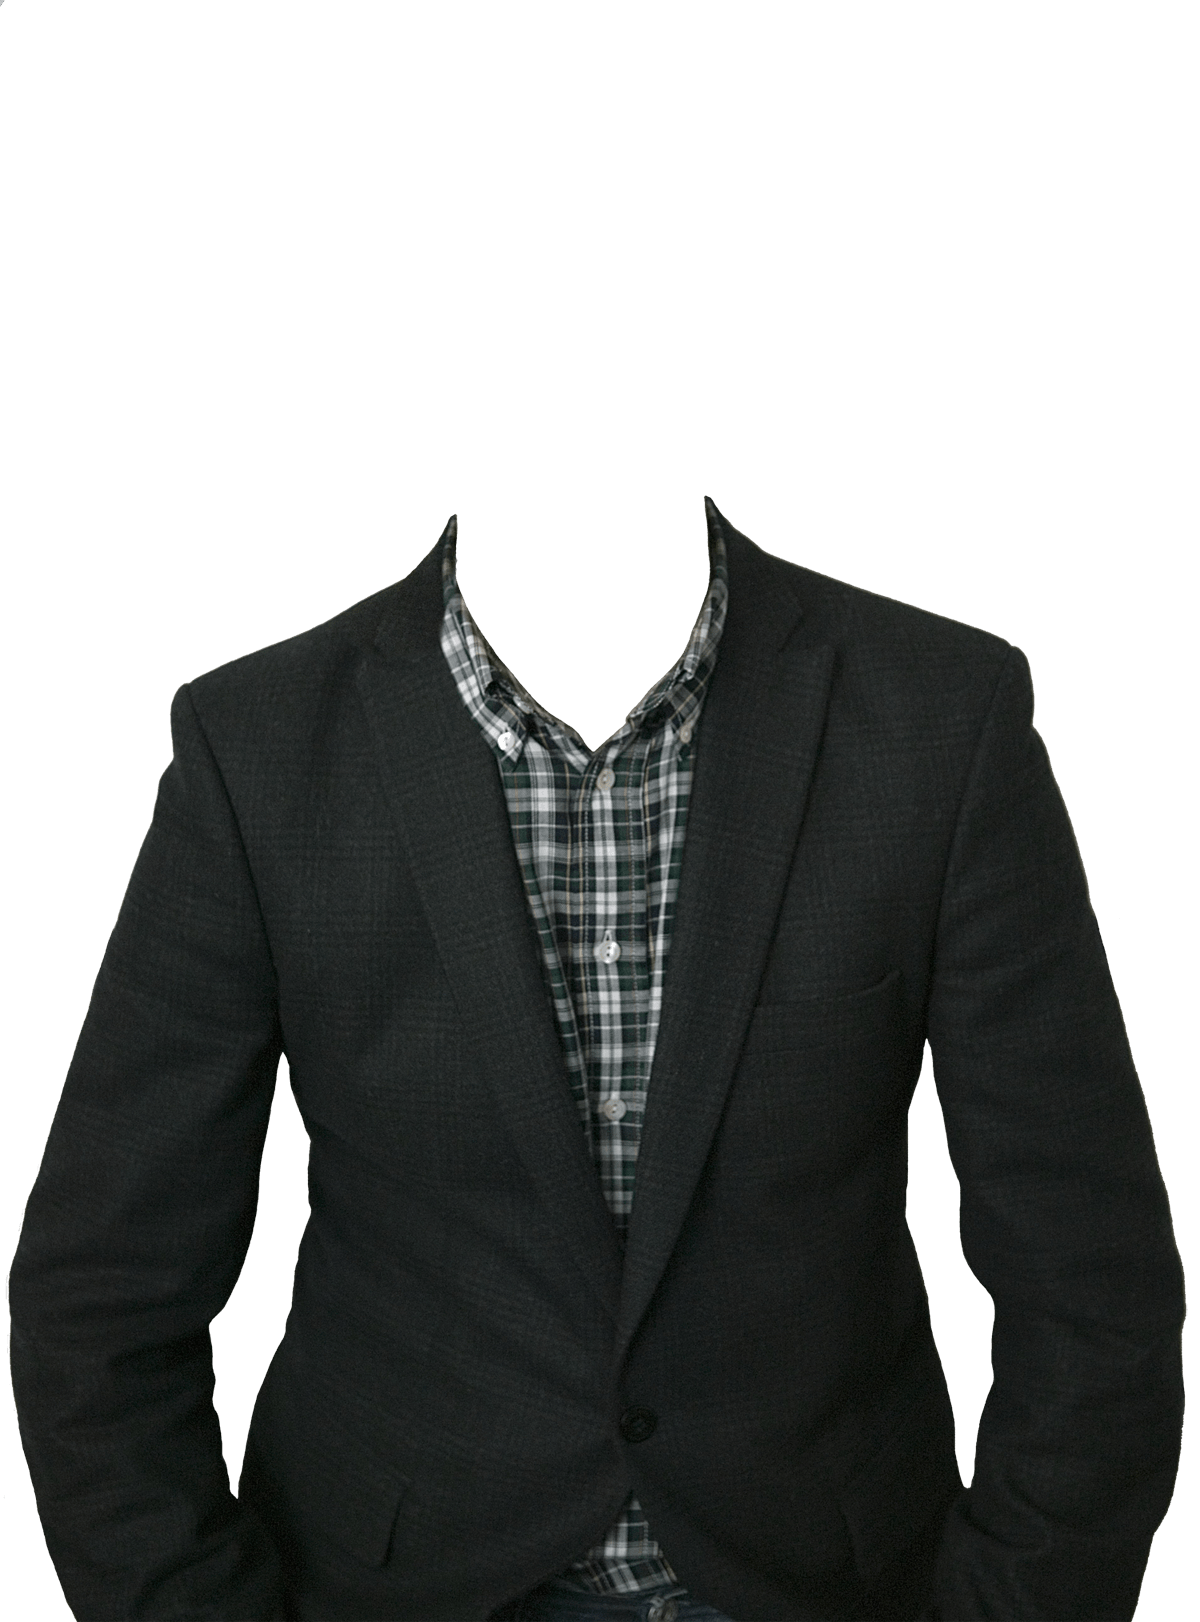 Png clothes. Suit no head transparent